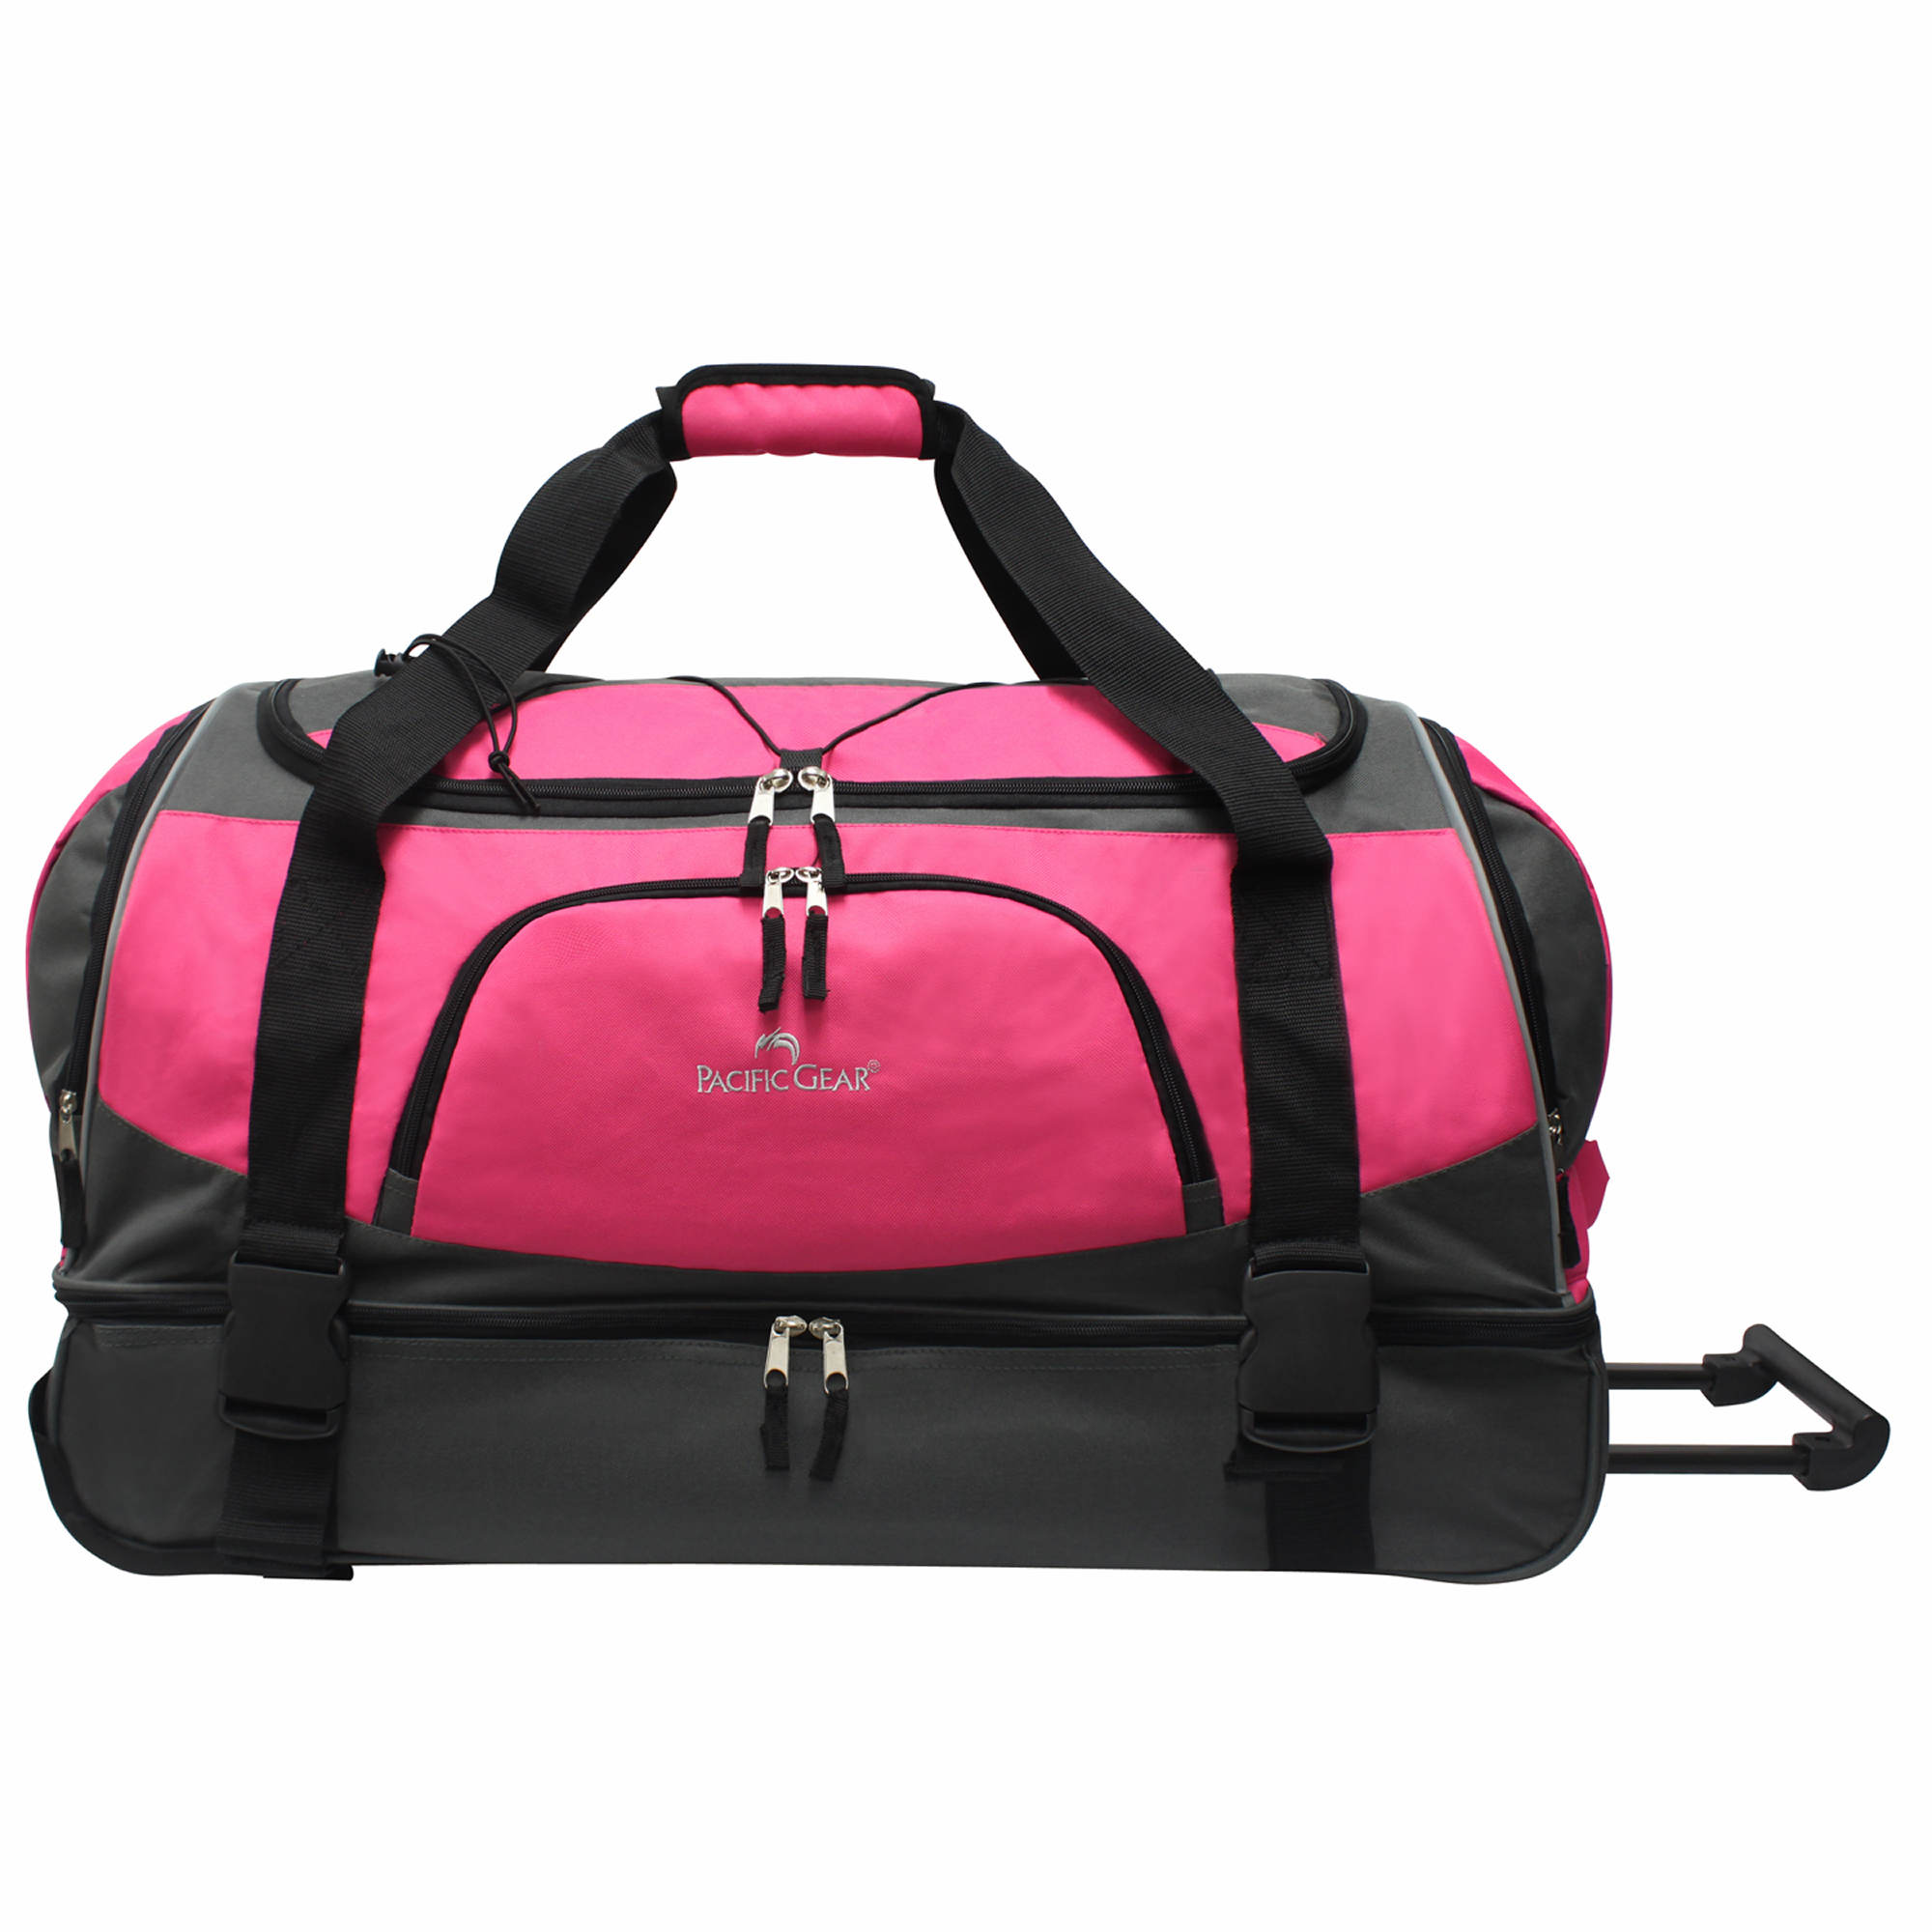 "Pacific Gear 30"" Drop-Bottom Rolling Duffel Bag - Pink"